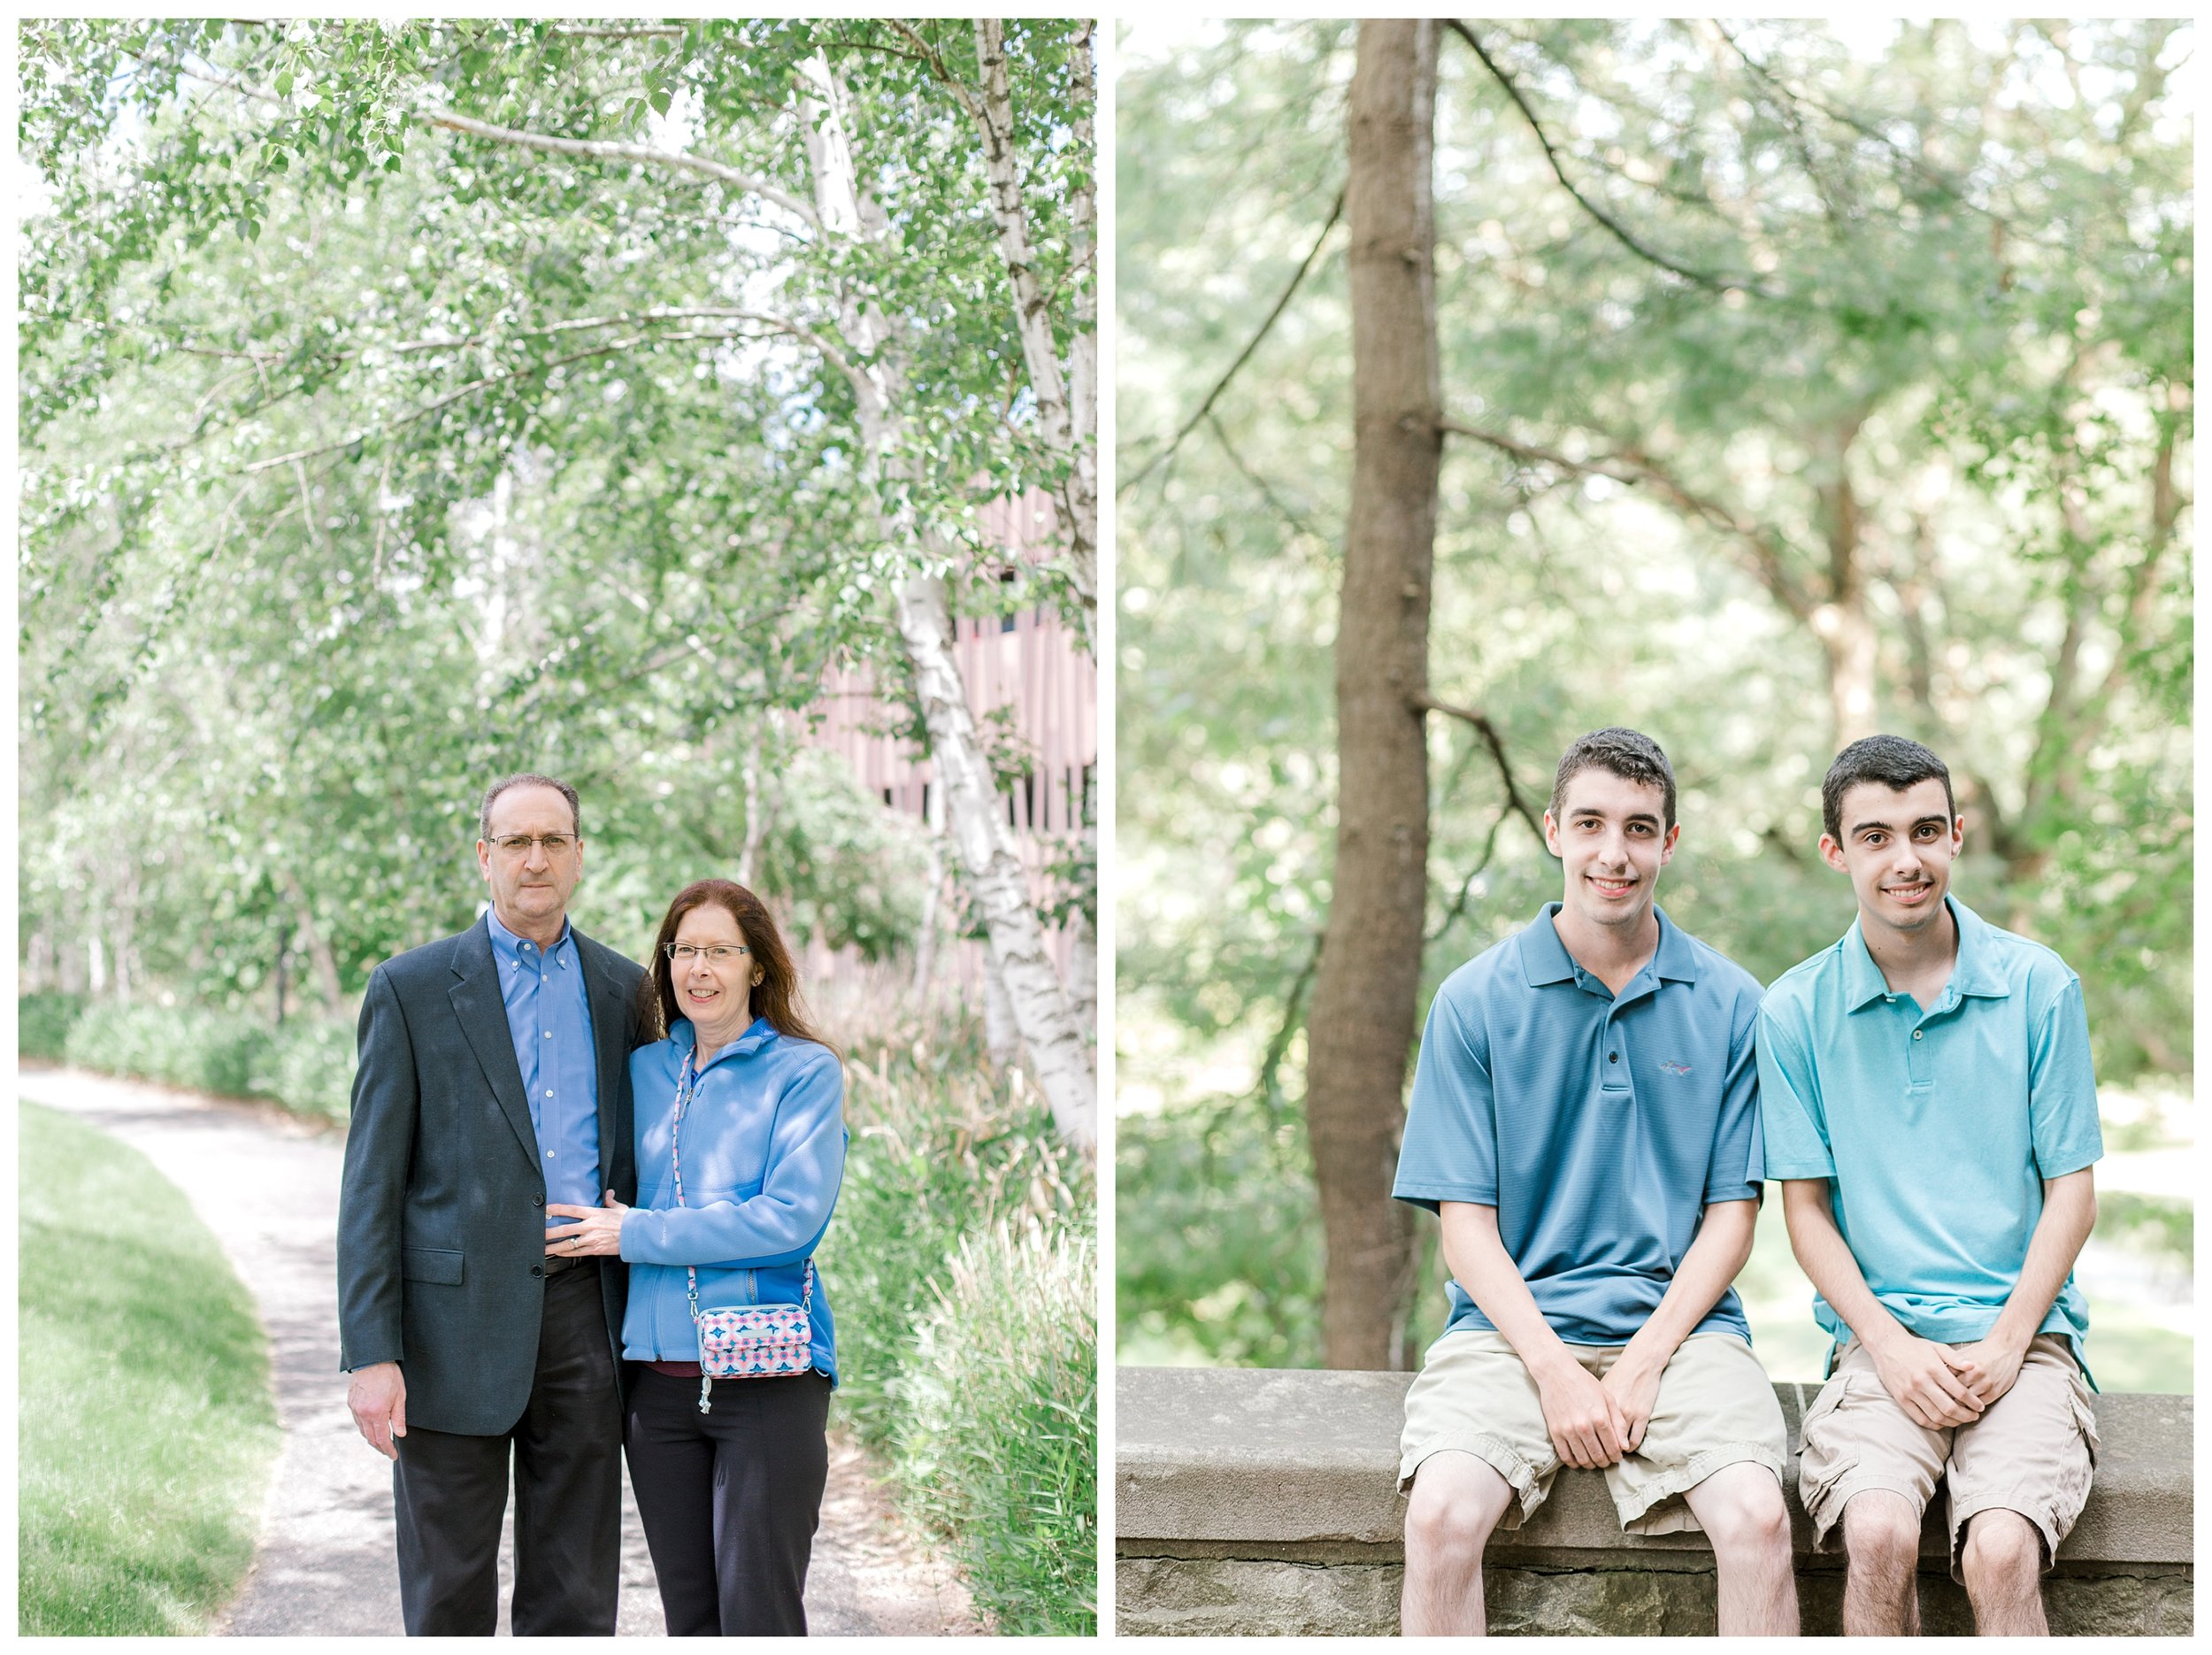 wellesley_college_family_photos_erica_pezente_photography.jpg